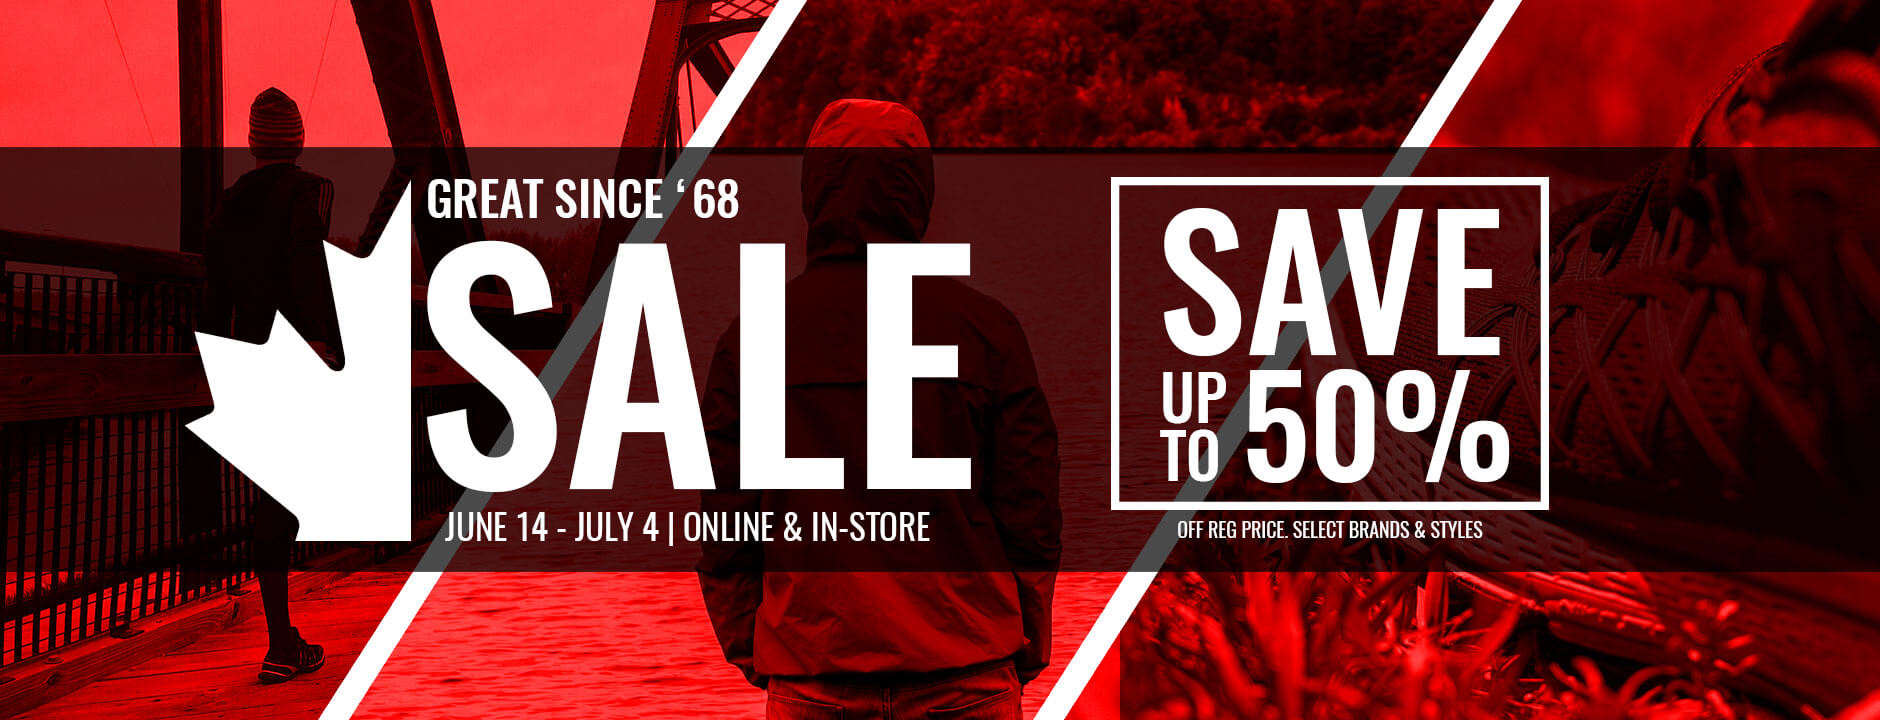 National Sports Great Since '68 Sale, Save Up To 50% Off Regular Price on Select Brands and Styles, June 14, 2019- July 4, 2019, Online & In-Store